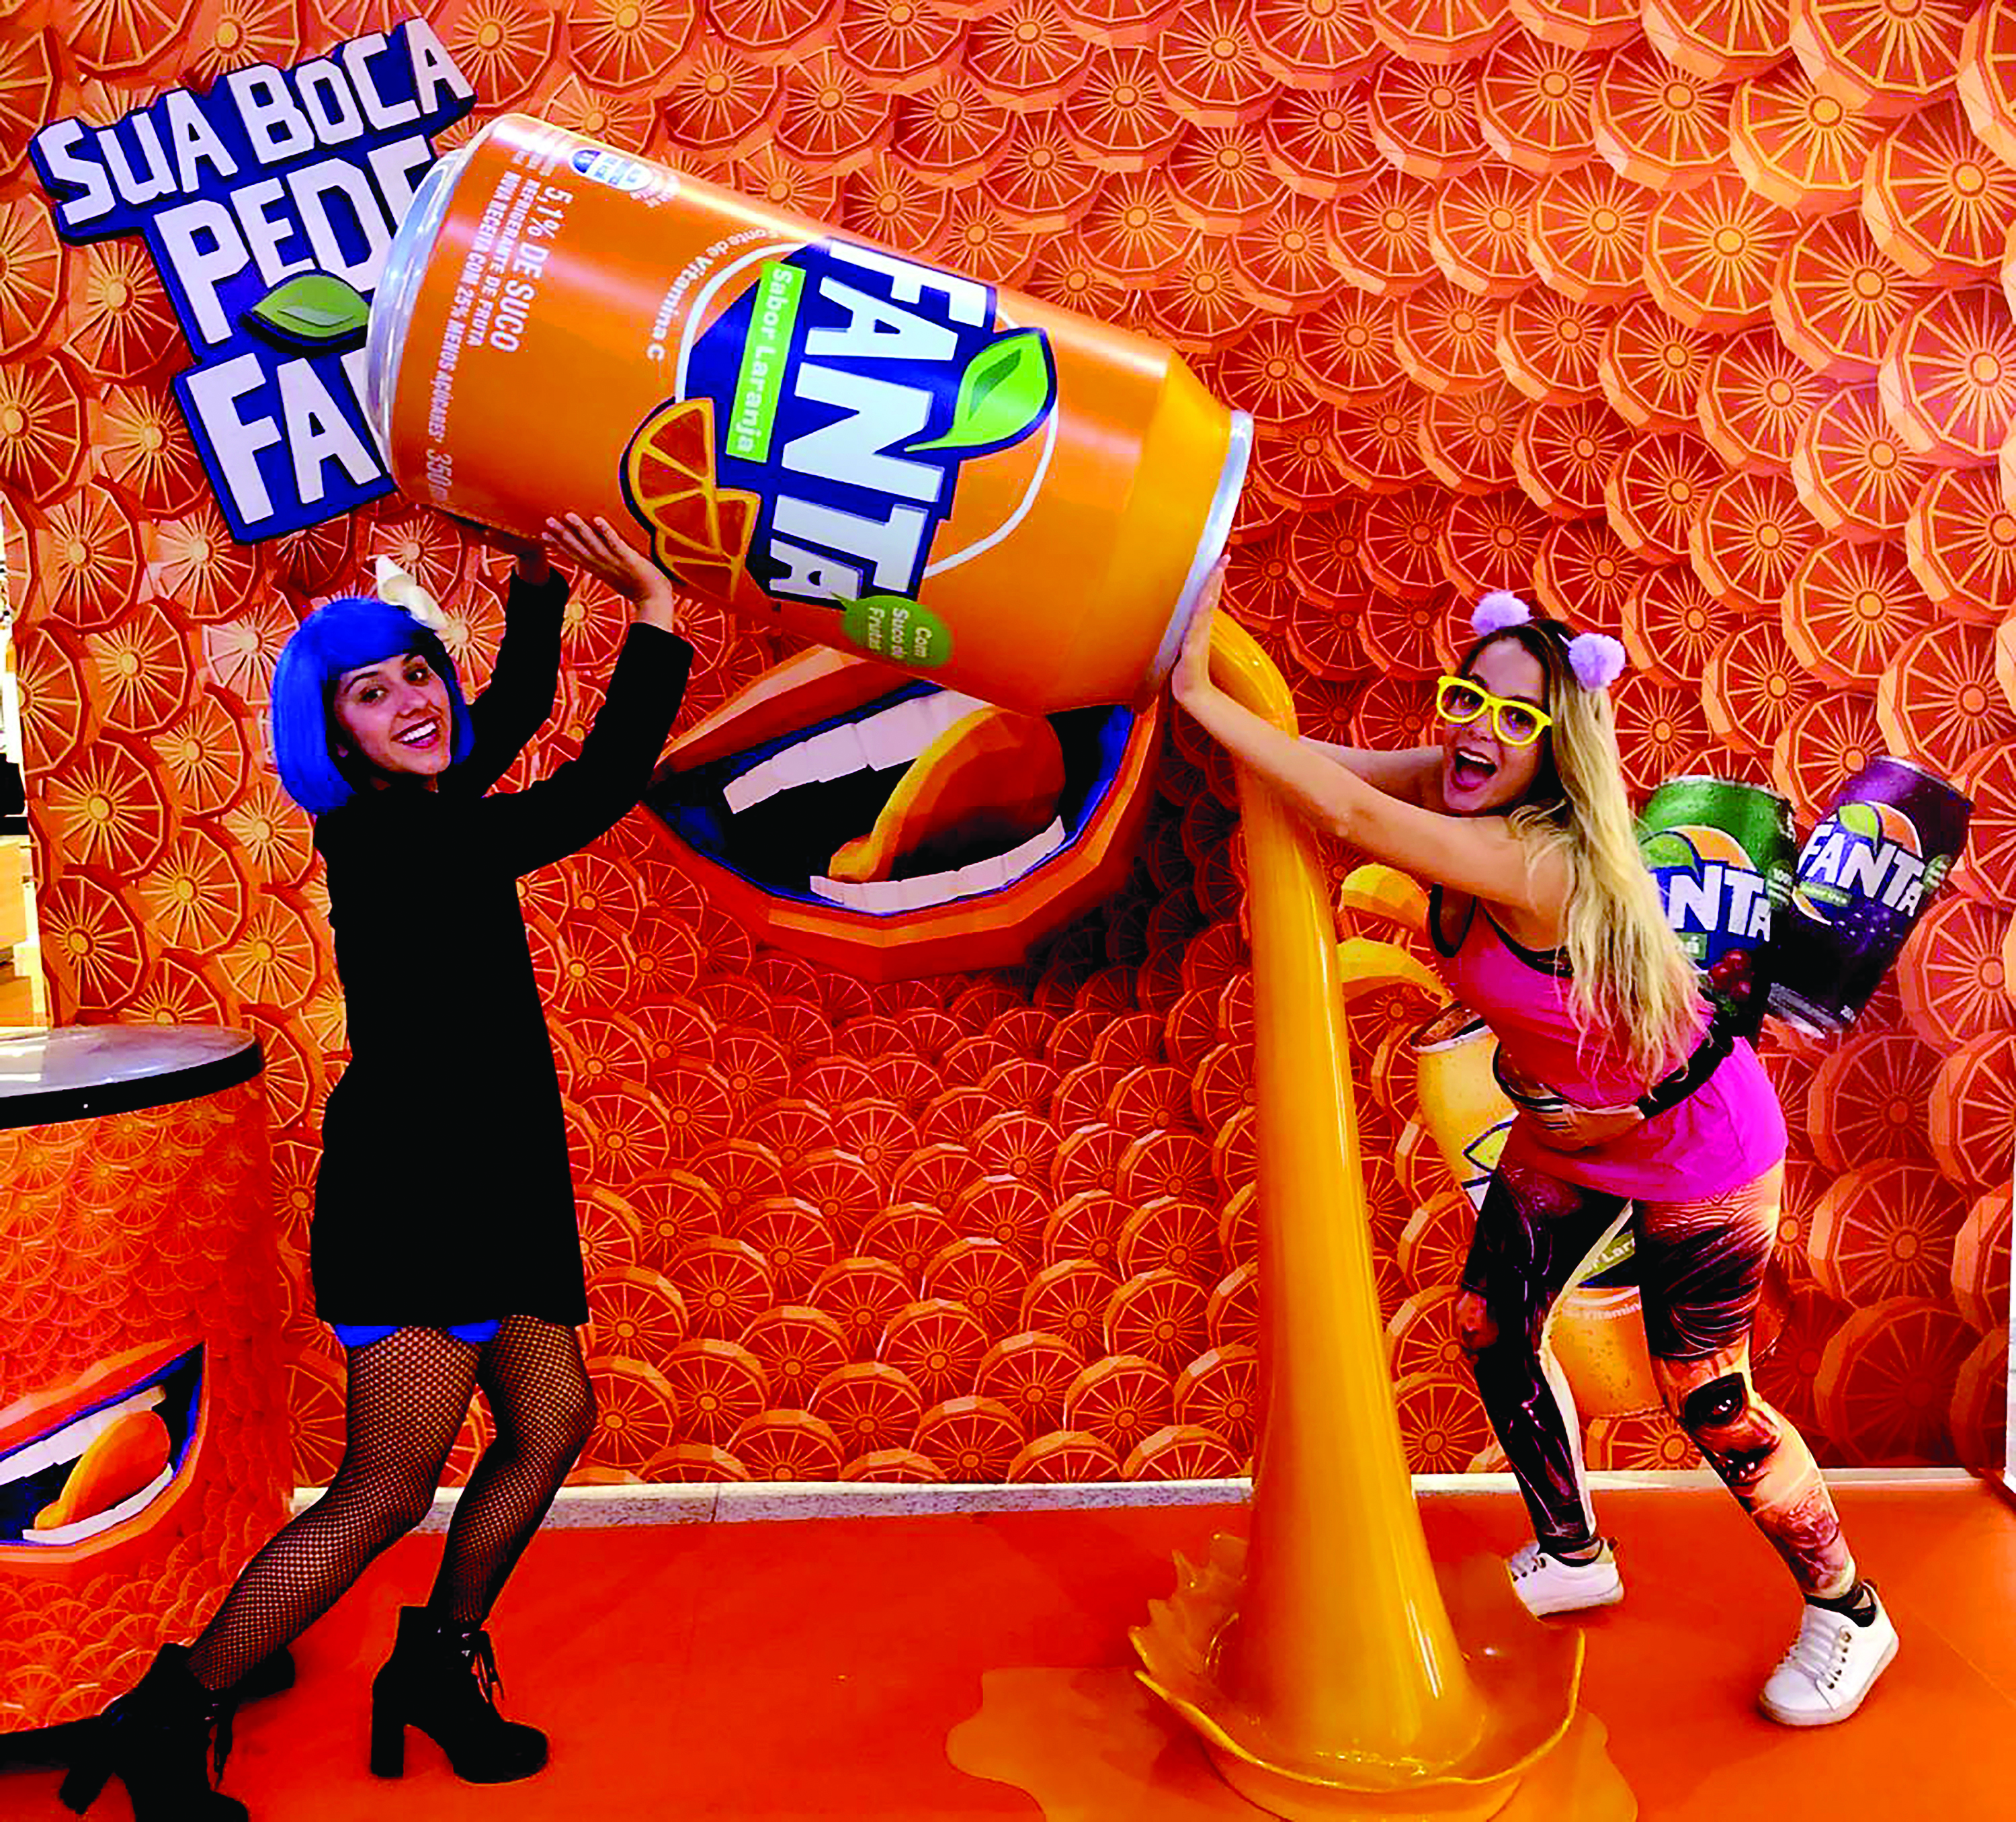 3D printing can be used to create a range of larger-than-life POP displays.